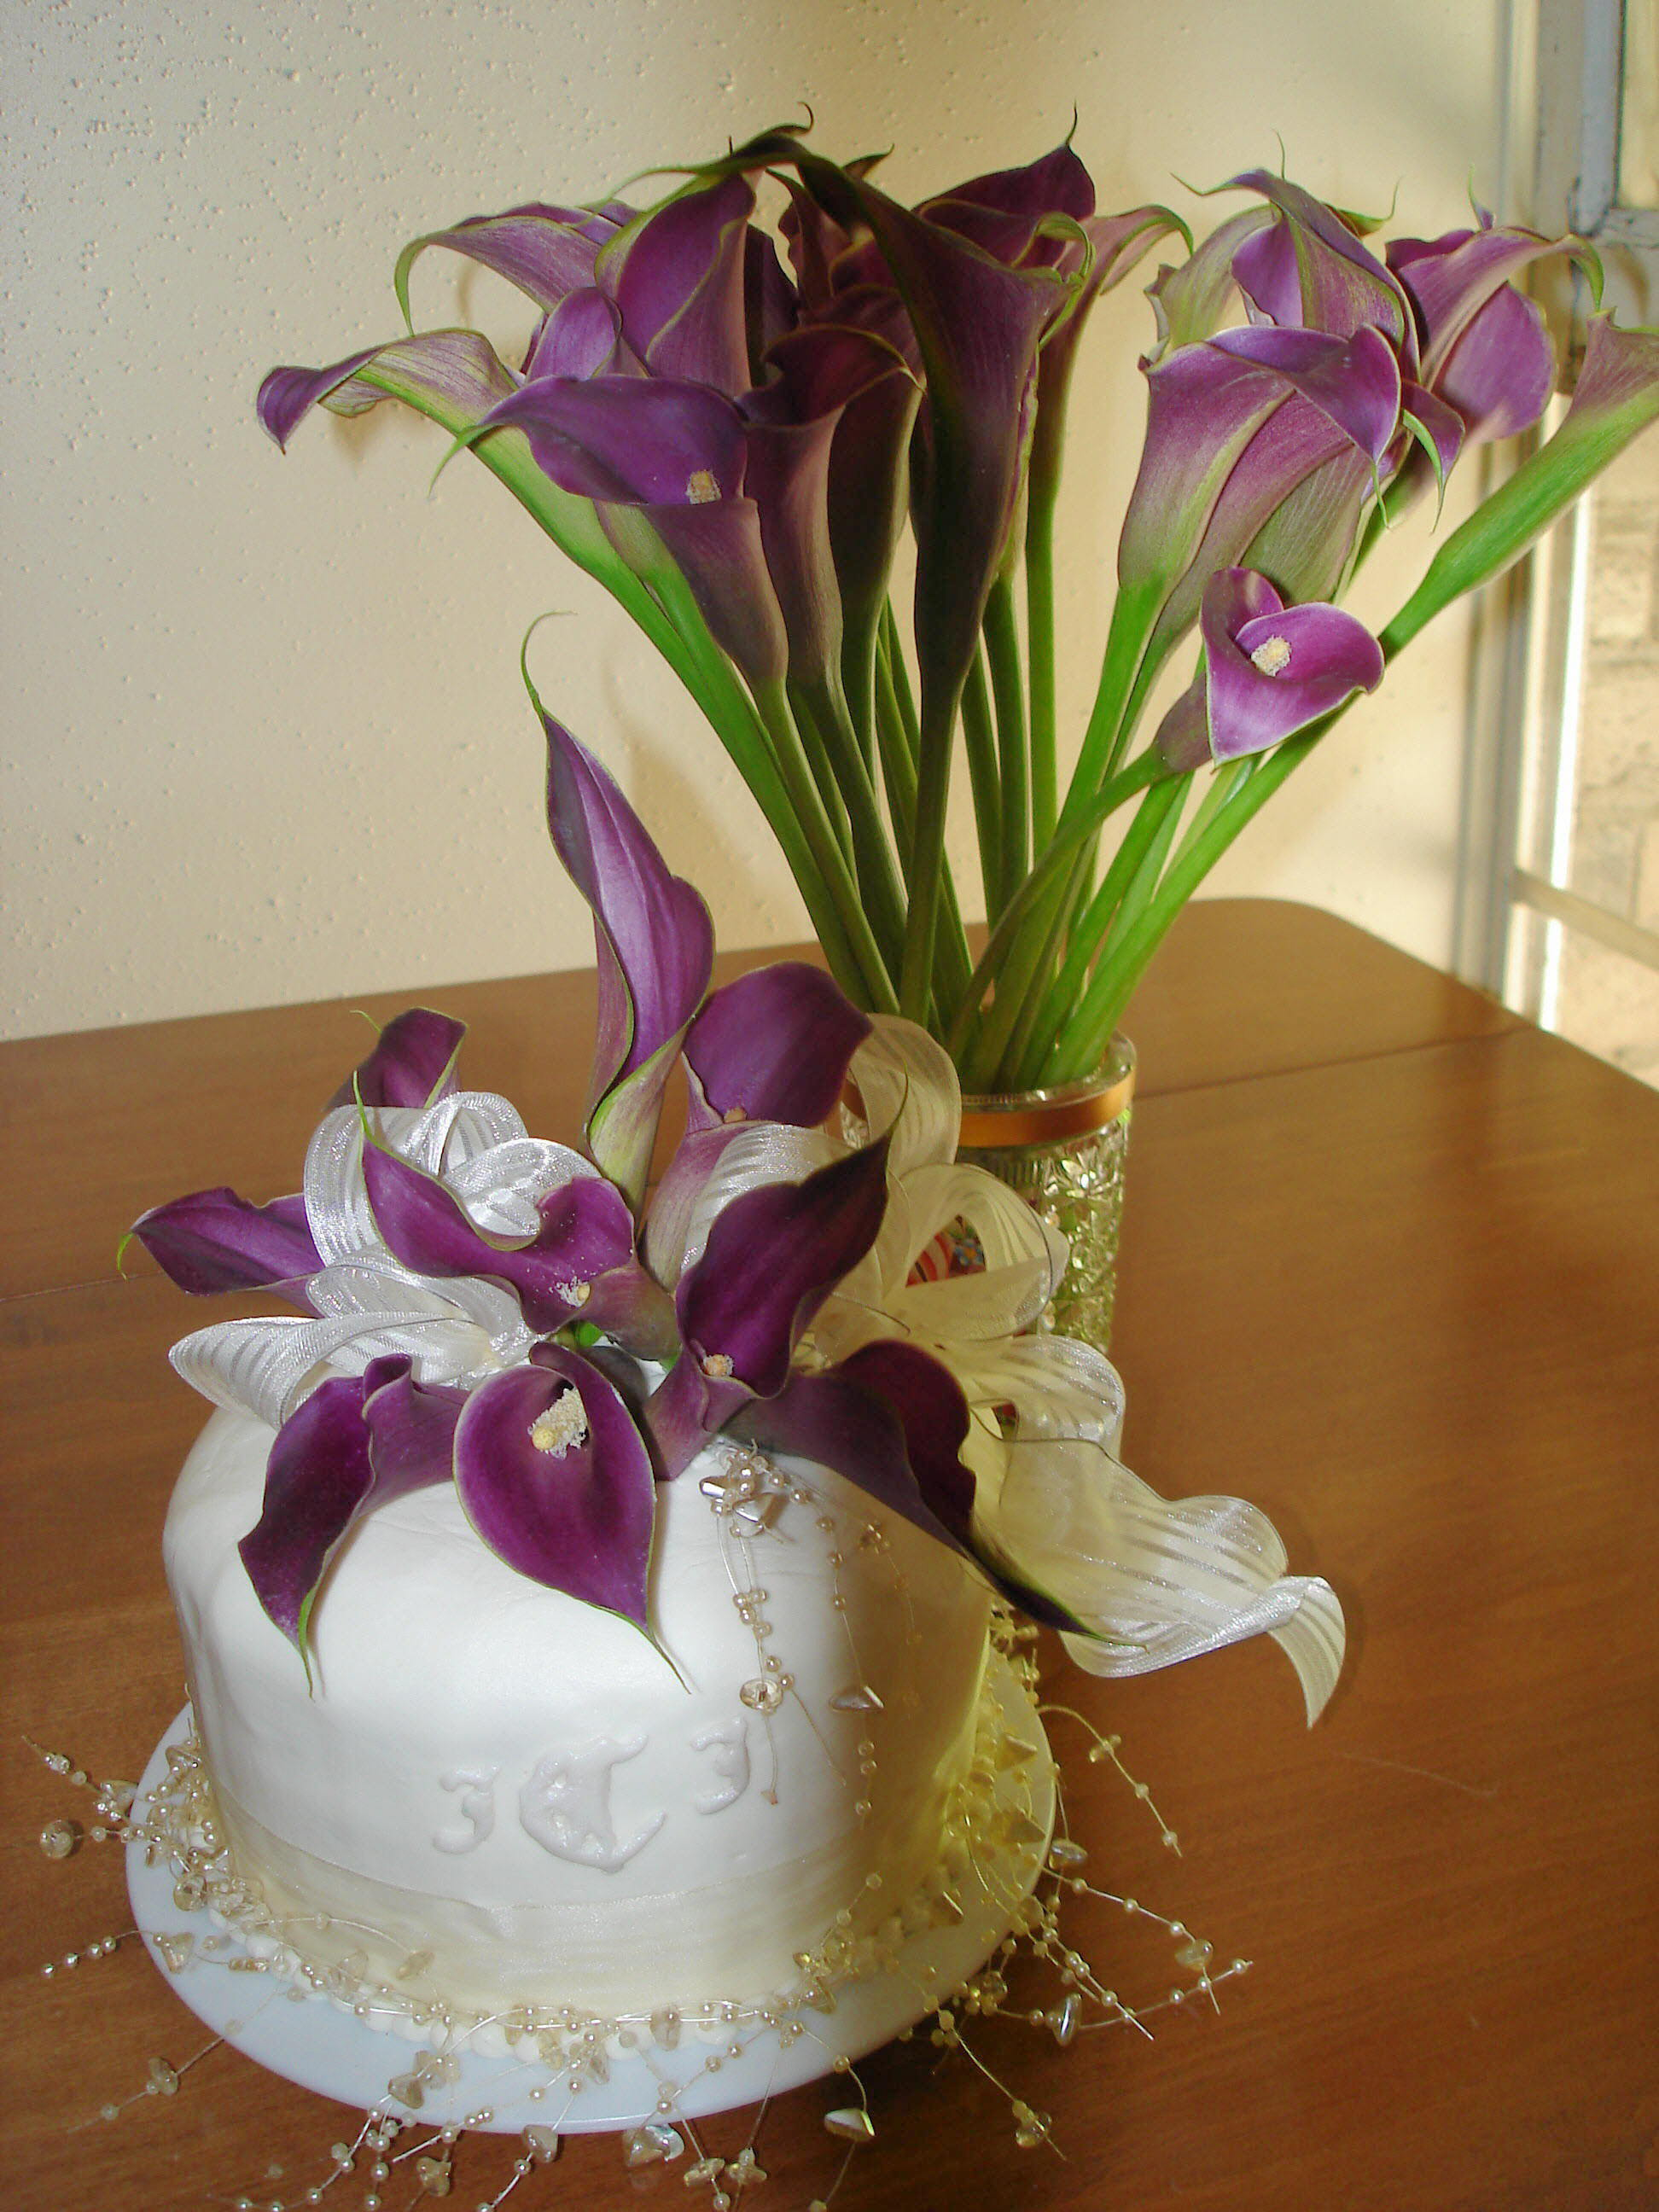 Flowers & Decor, Cakes, purple, cake, Flowers, Calla, Lilies, Flowerbudcom